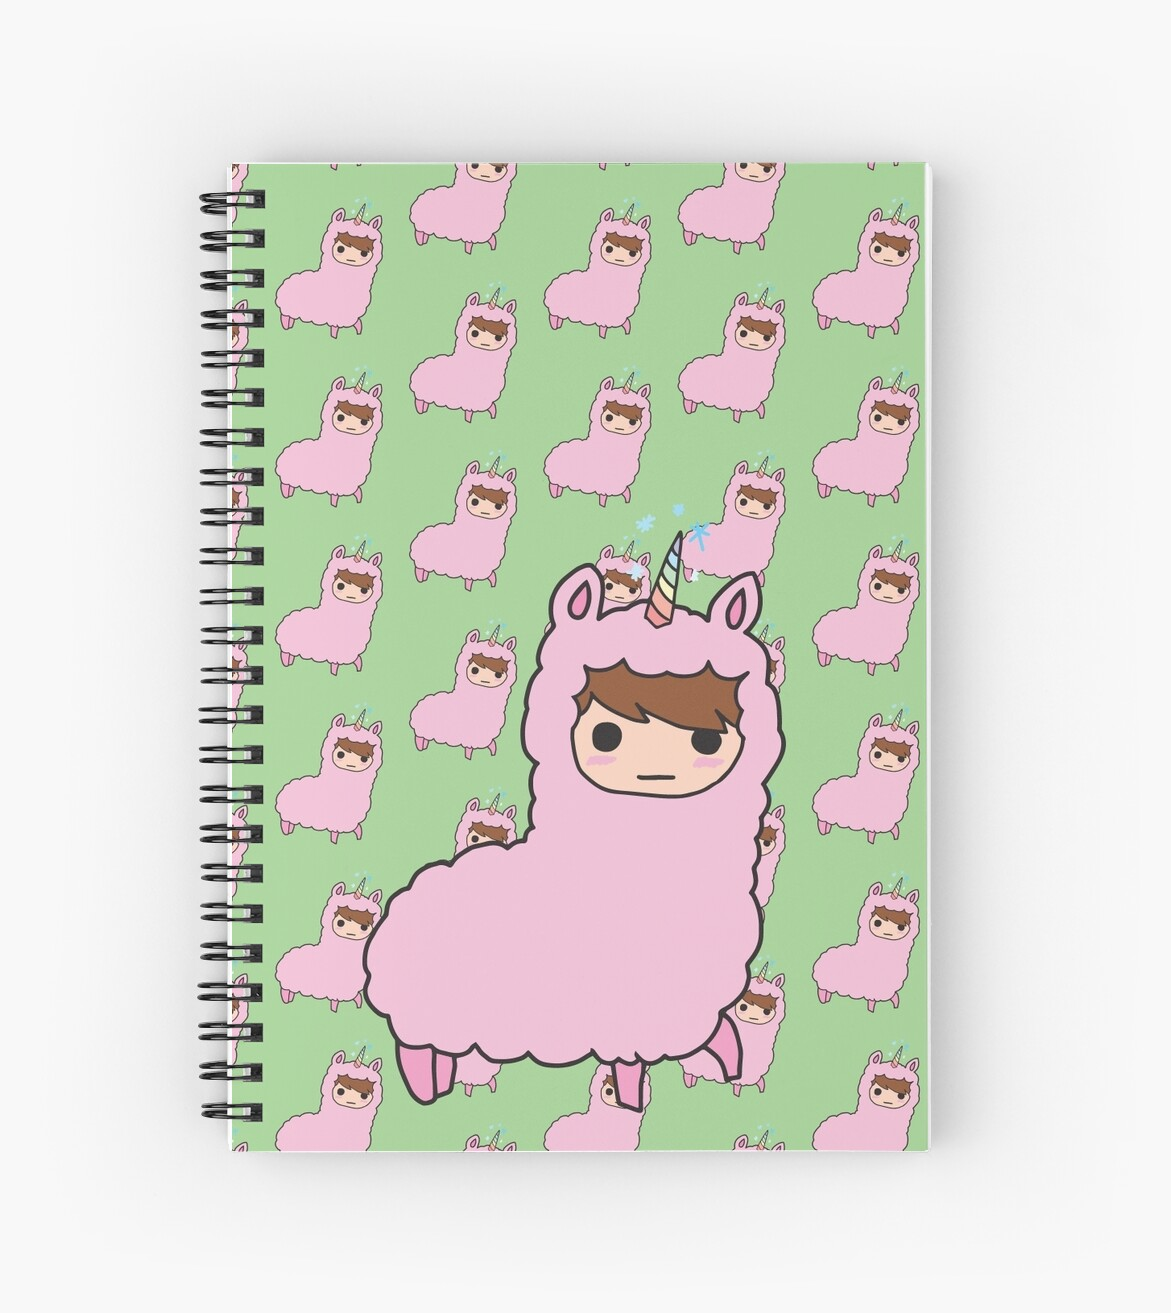 Danisnotonfire In Llama Costume Green Spiral Notebooks By Lucy Lier